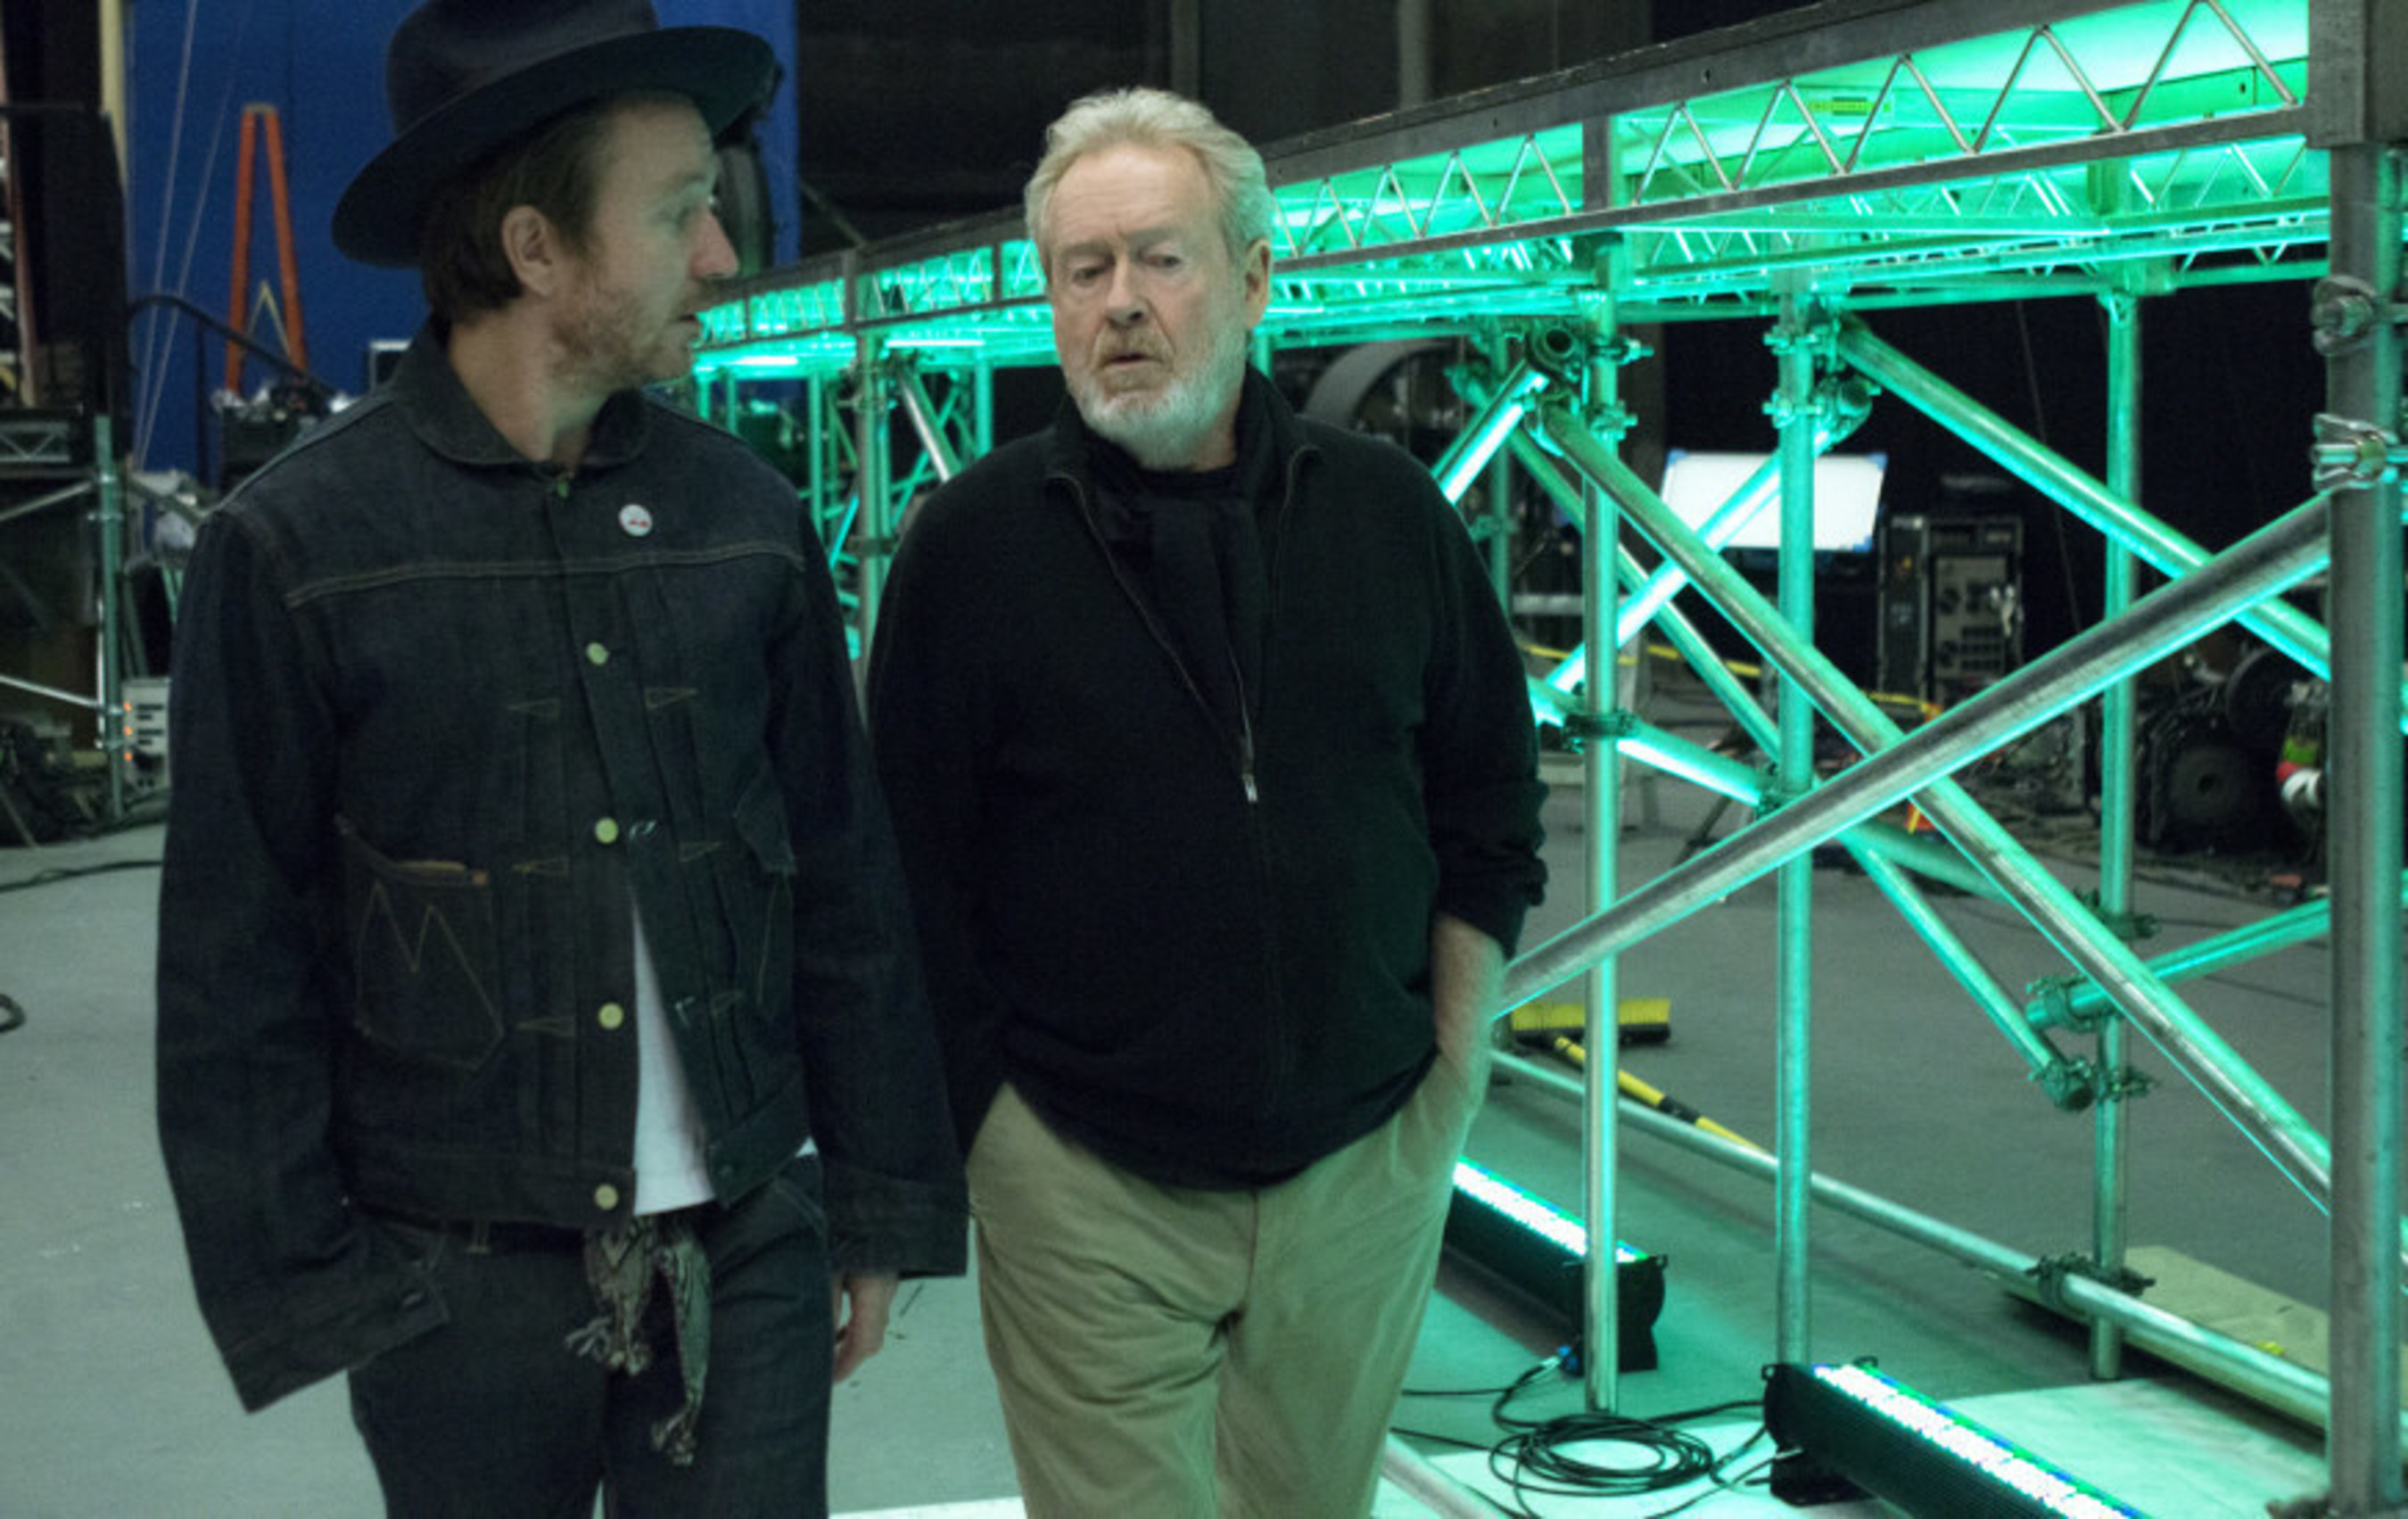 Jake and Ridley Scott on set of LG's first-ever LG Super Bowl commercial.